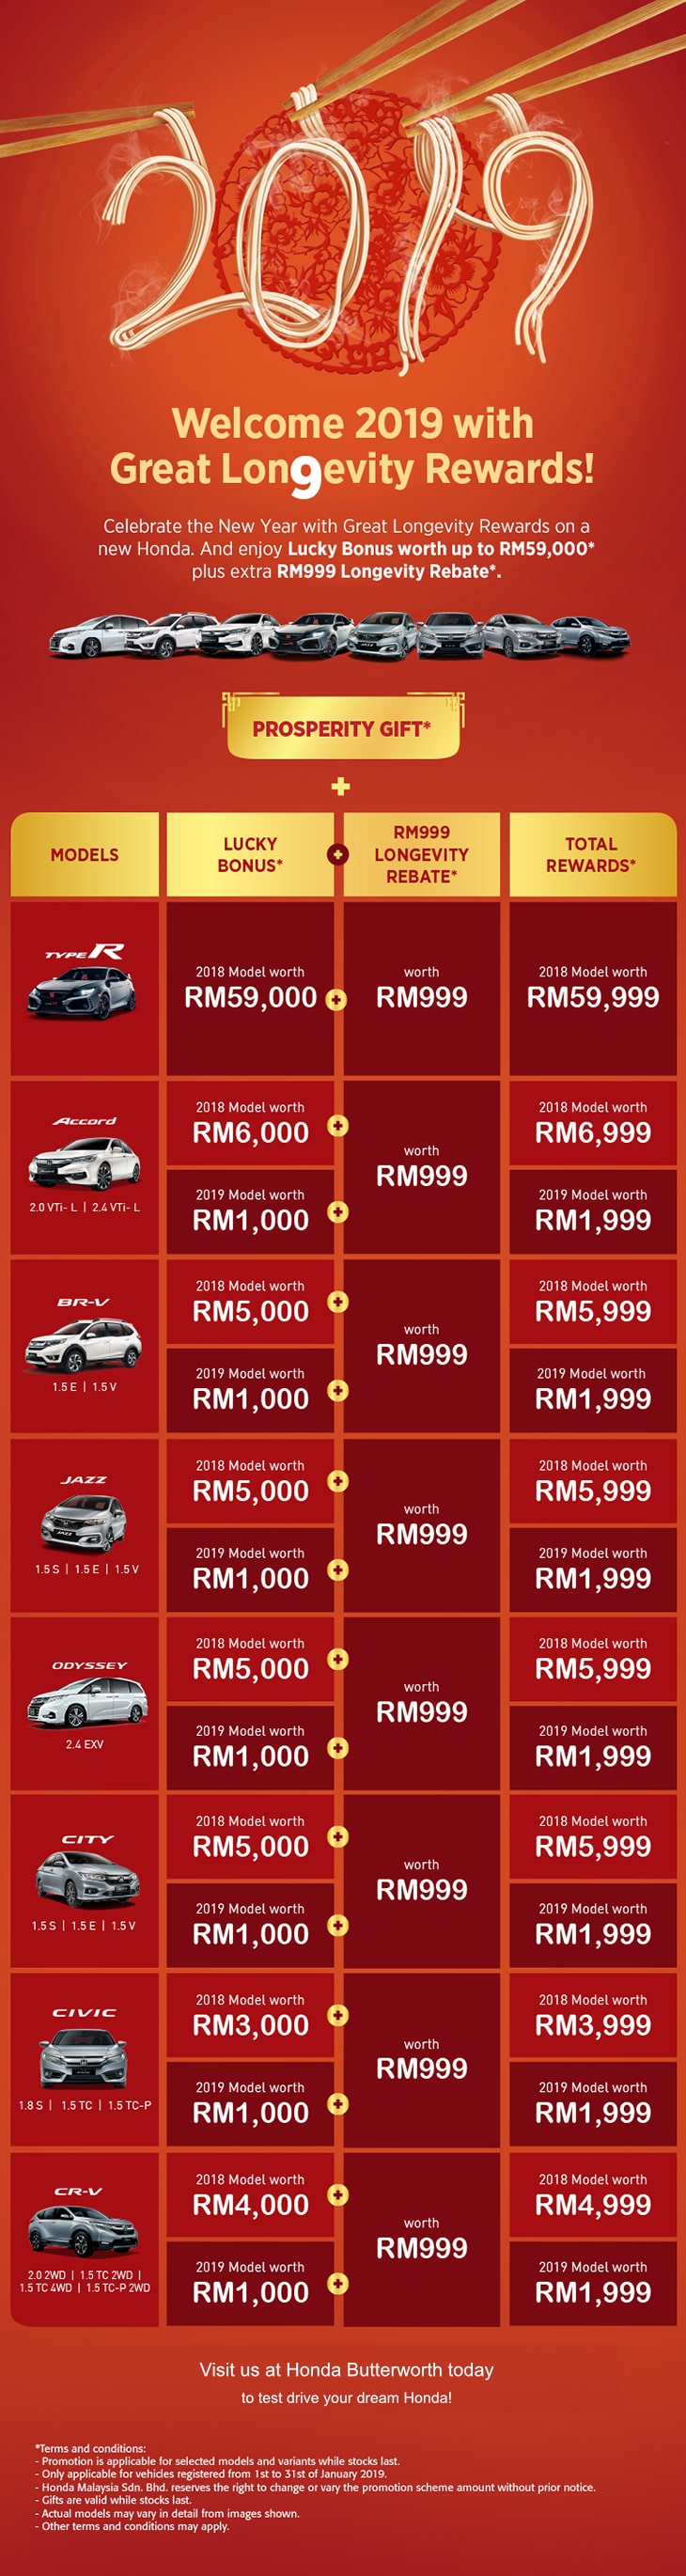 Honda Malaysia 2019 longevity rewards price table